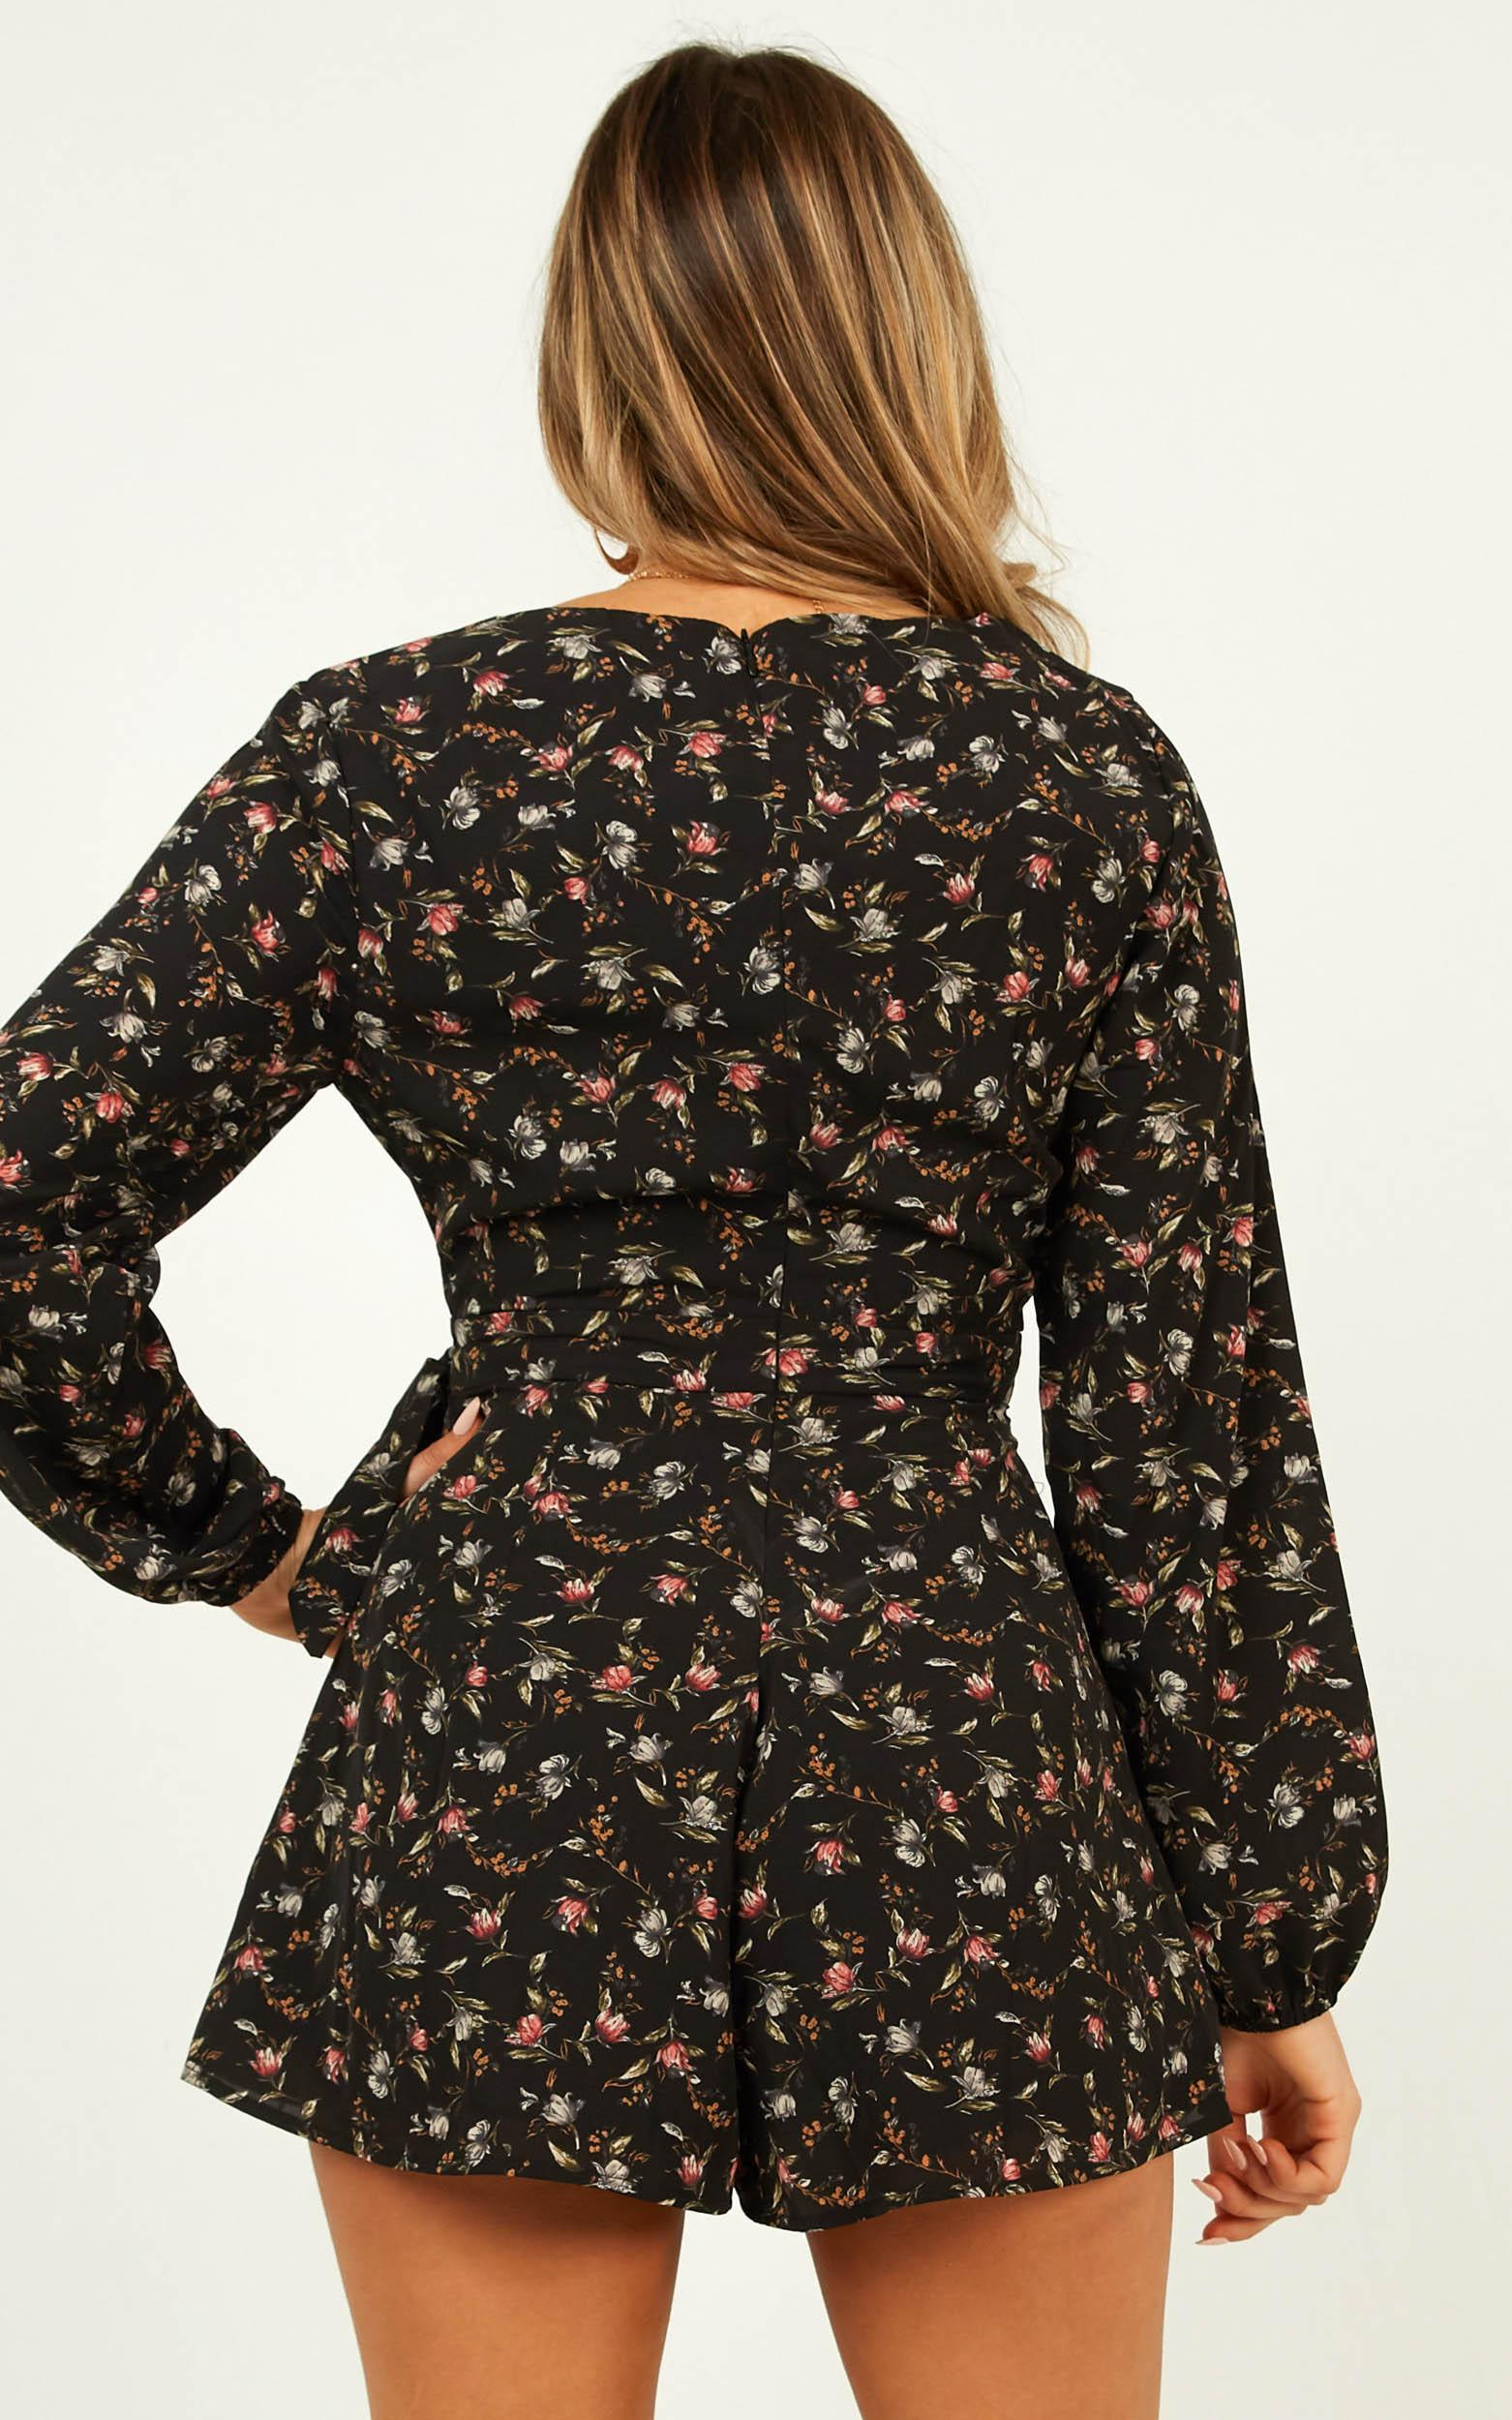 Cute Girl Playsuit in black floral - 20 (XXXXL), Black, hi-res image number null